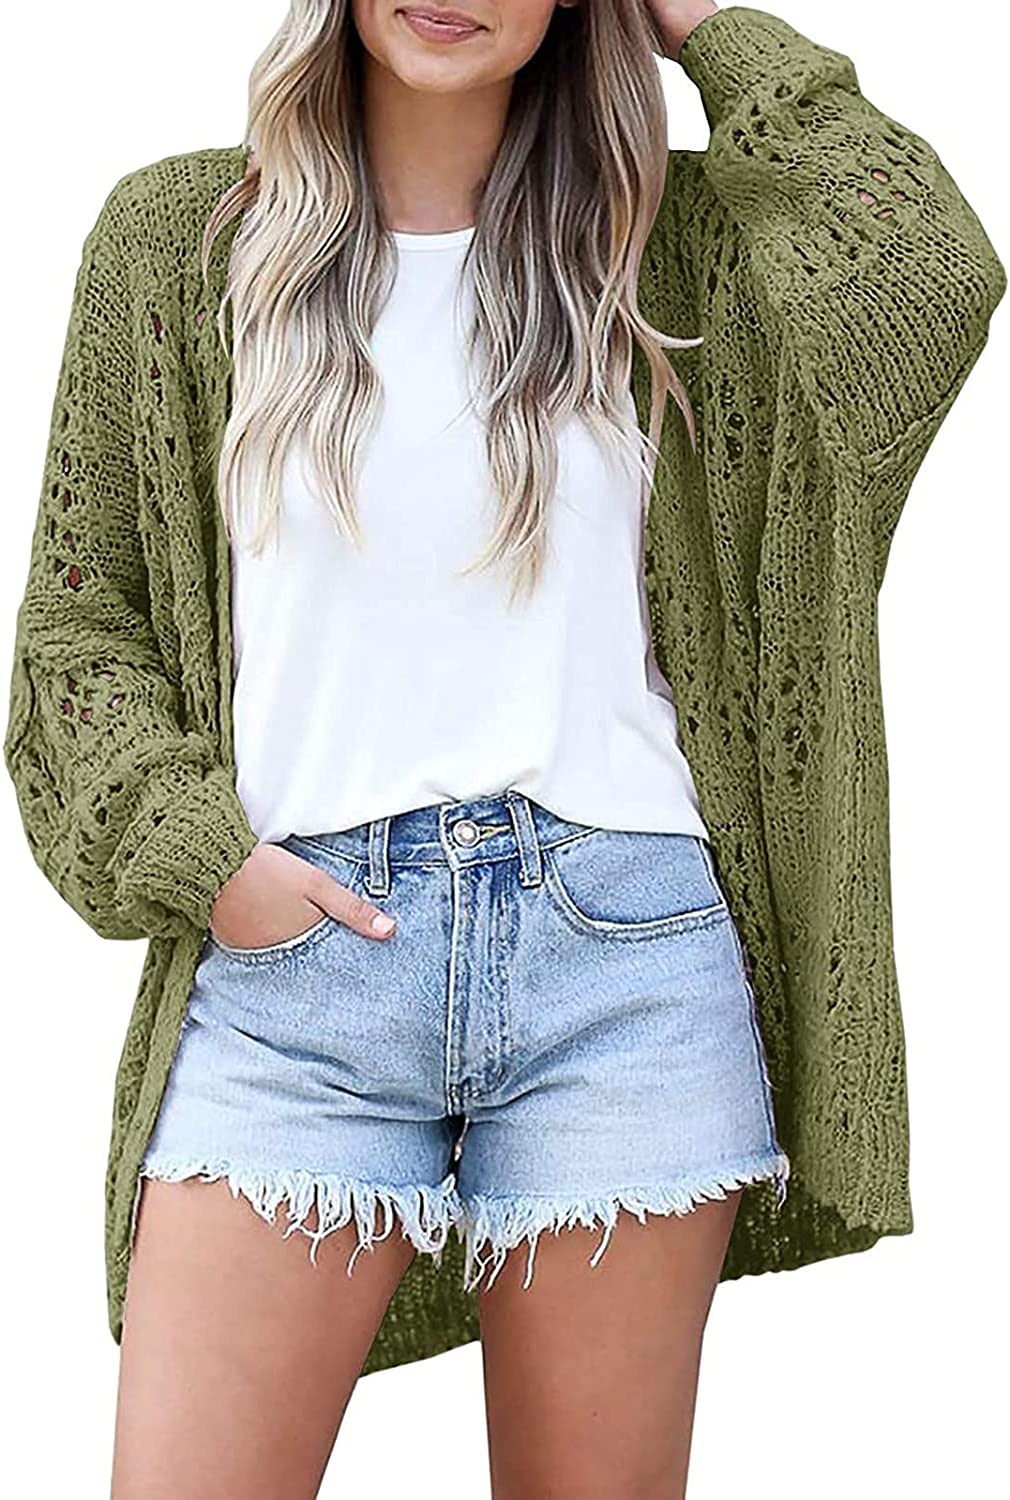 Women's Crochet Cardigan Kimono Solid Color Long Sleeve Lightweight Soft Oversized Open Front Knitted Sweater